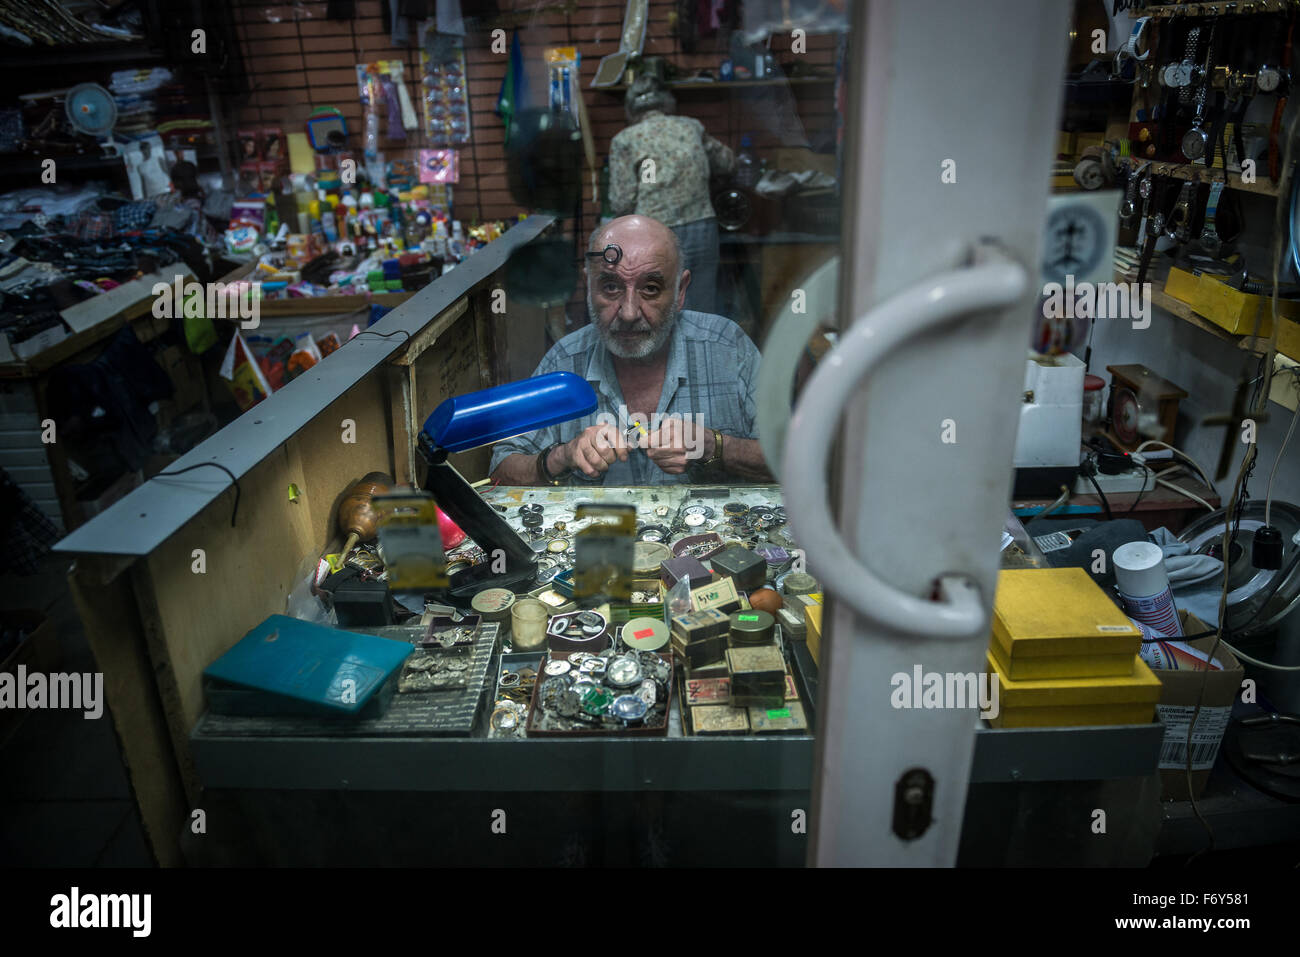 clockmaker worksop in Tbilisi, capital of Georgia - Stock Image